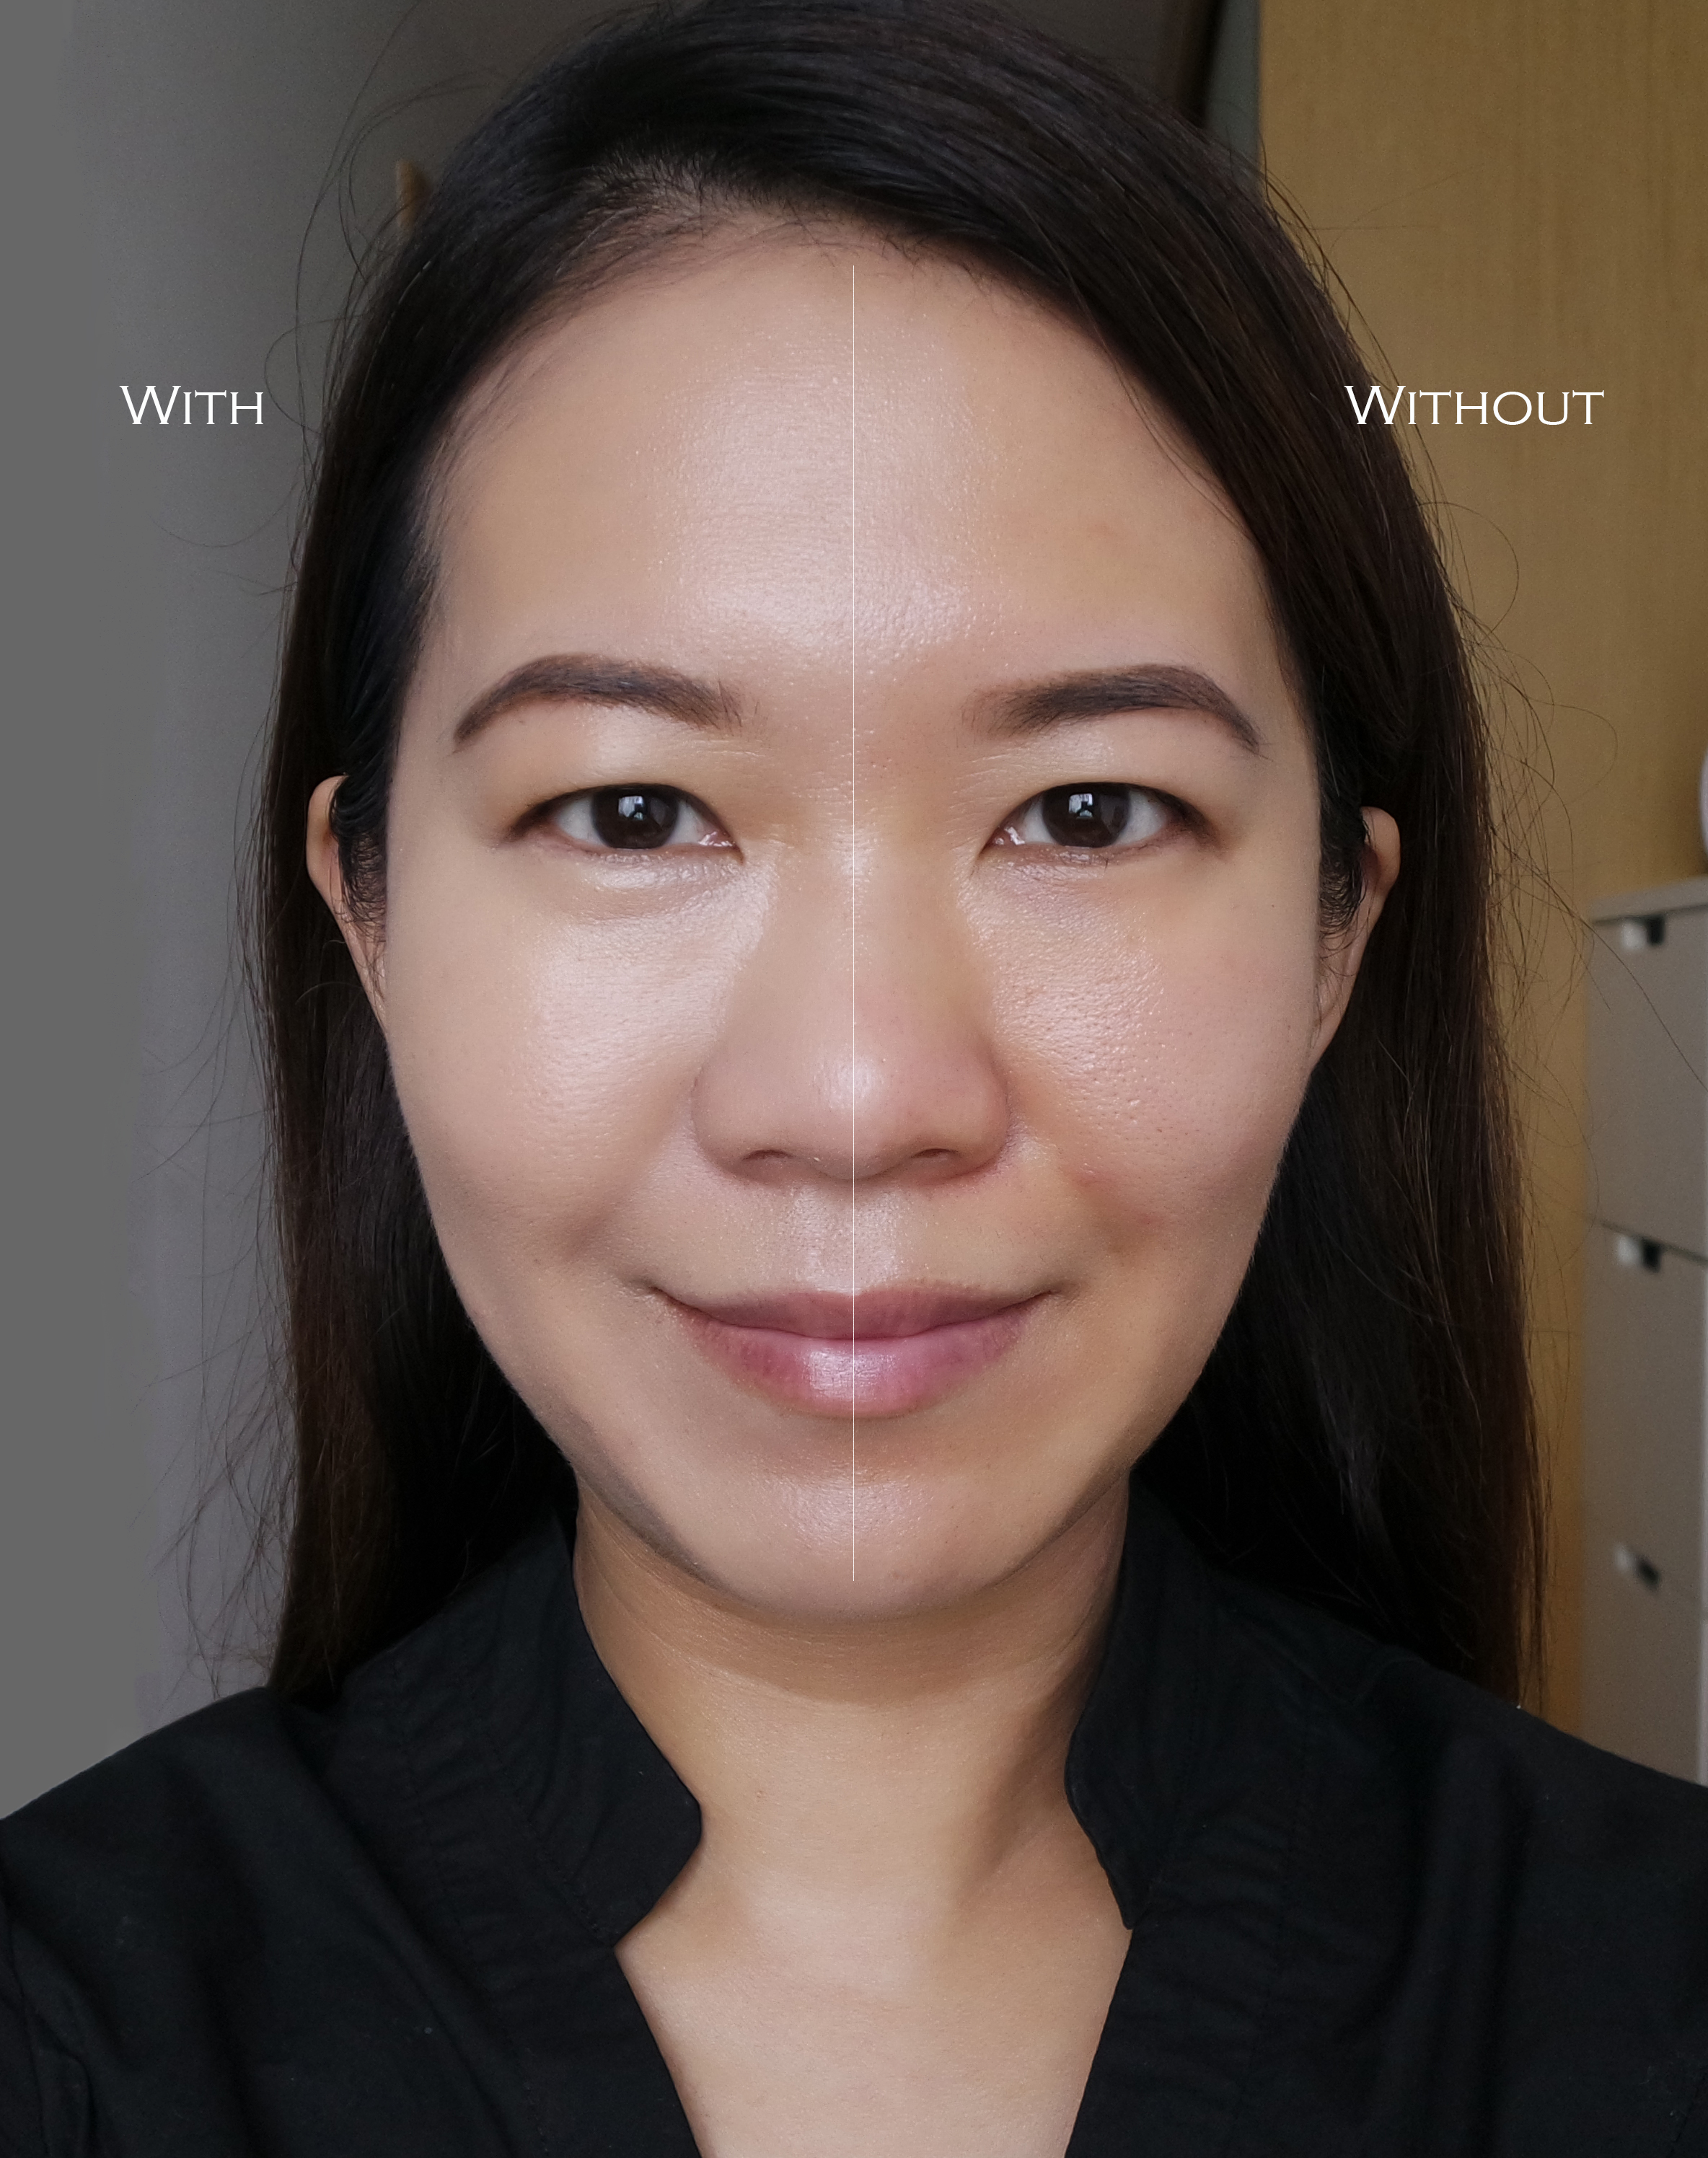 Shiseido Synchro Skin White Cushion before after comparison